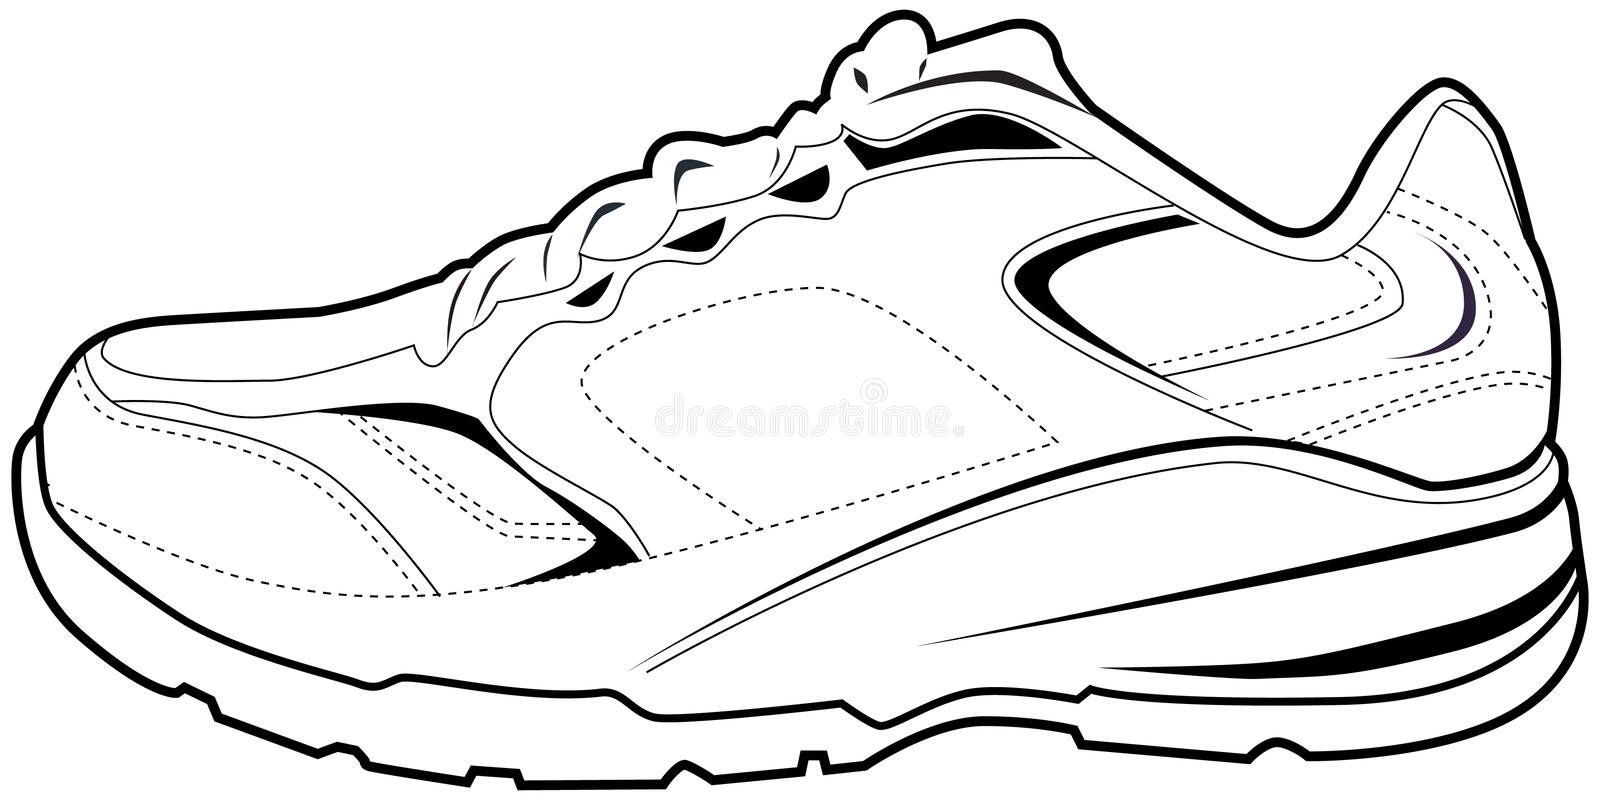 tennis shoe stock vector illustration of sportswear 12624100 rh dreamstime com tennis shoe sole vector Shoe Print Vector